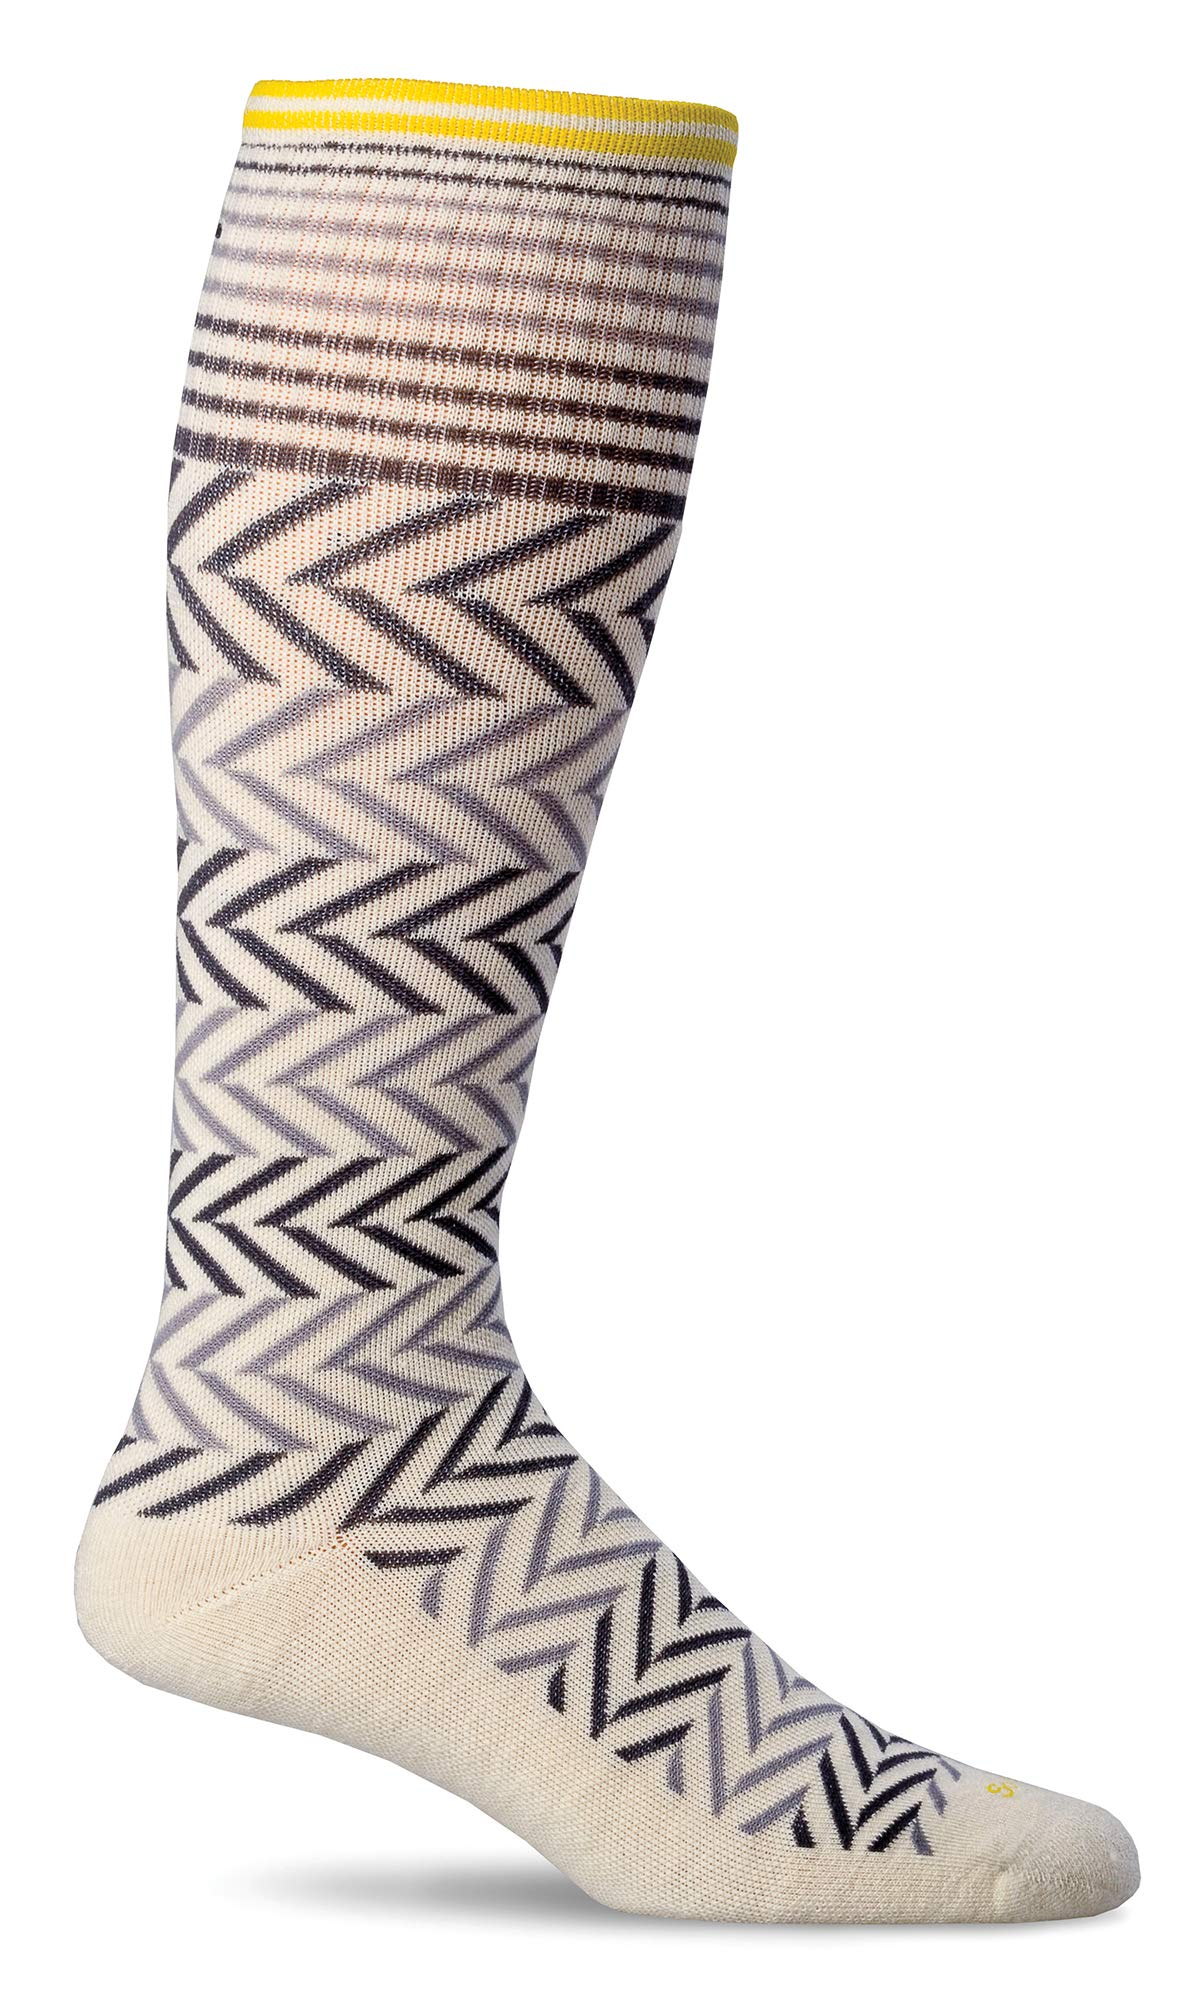 Sockwell Women's Chevron Graduated Compression Socks, Natural, Medium/Large by Sockwell